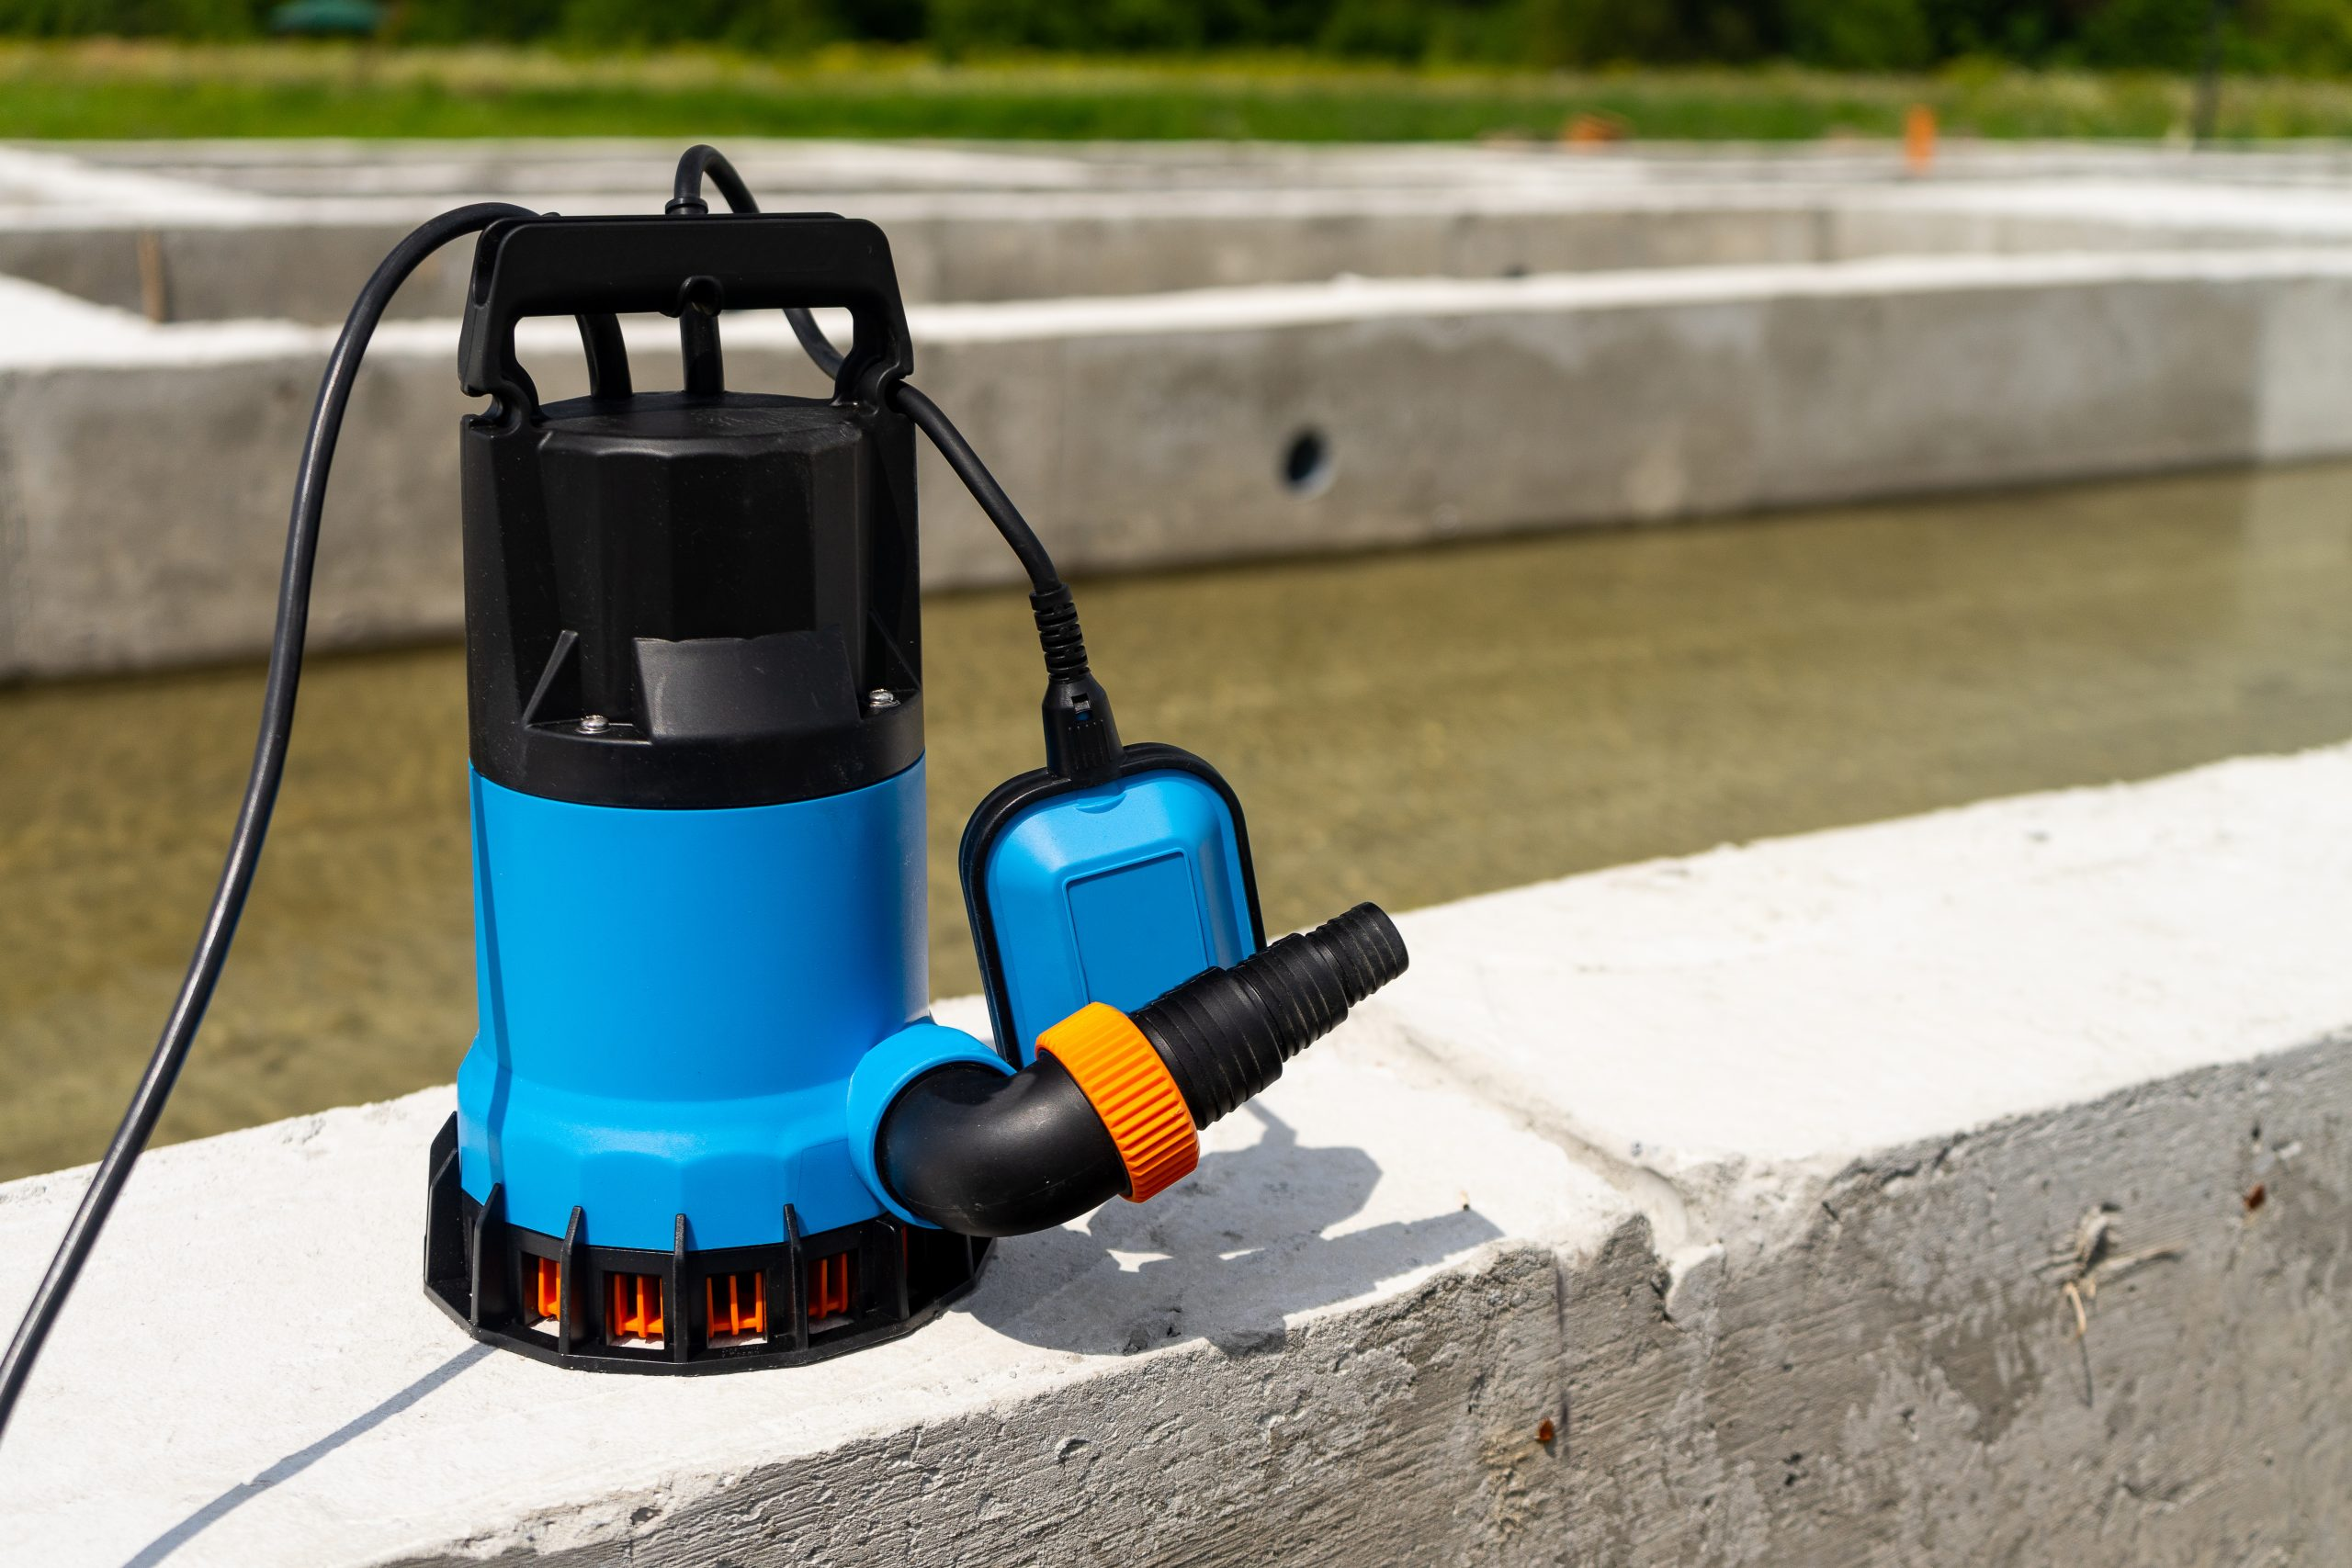 Submersible pump dewater construction site, pumping flood water sing deep well.